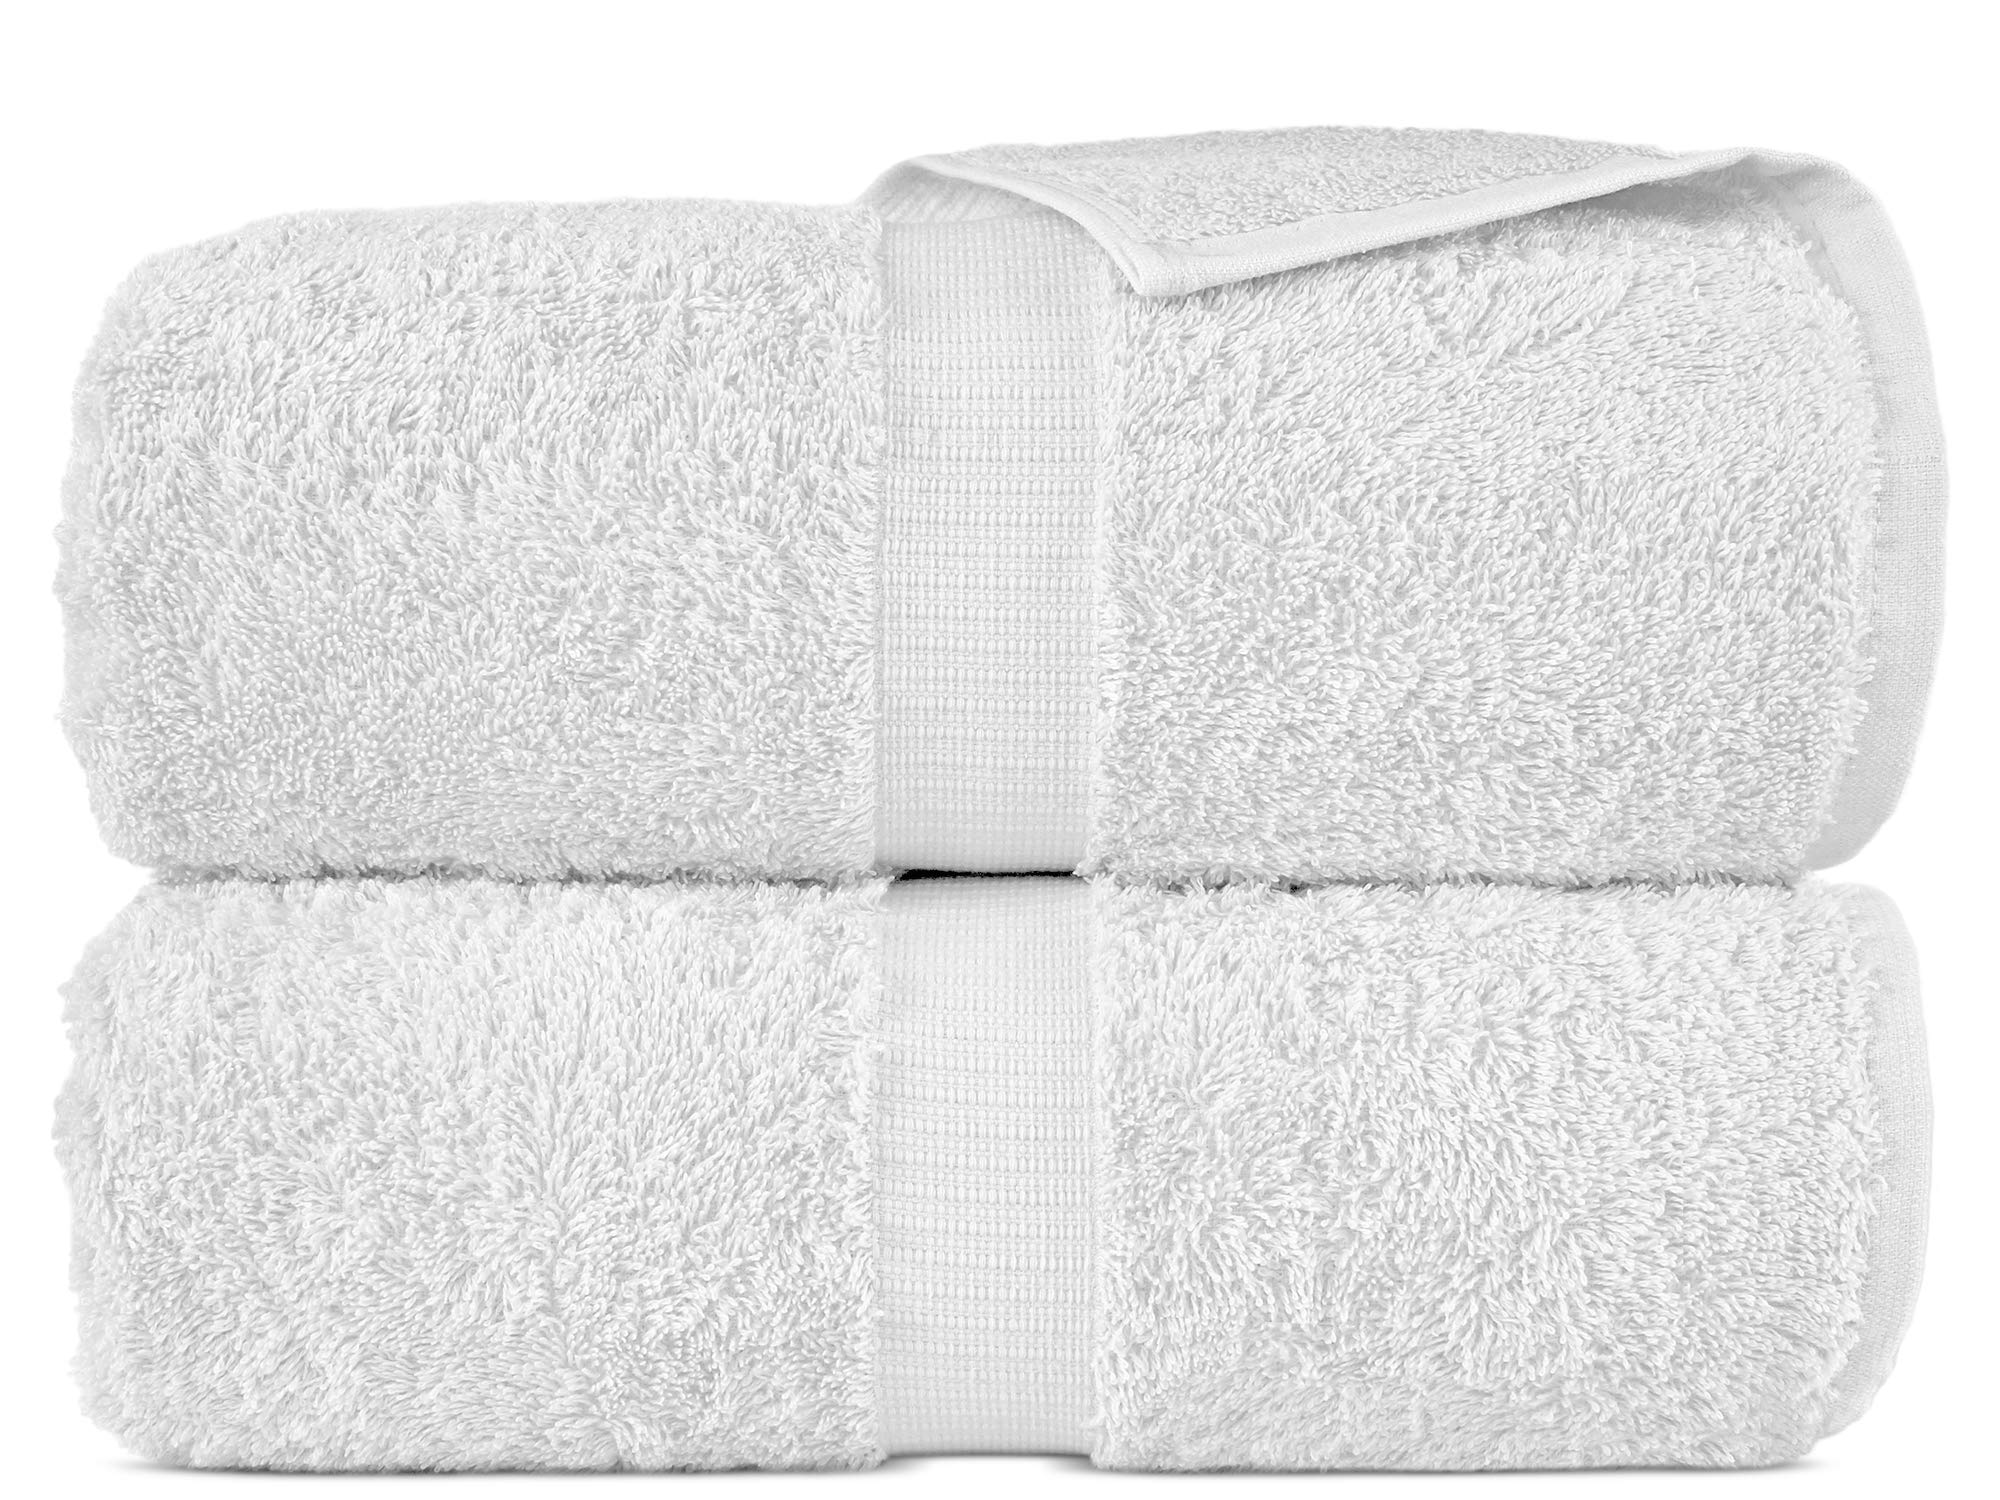 100% Luxury Turkish Cotton, Eco-Friendly, Soft and Super Absorbent 35'' x 70'' Large Bath Sheets (White, Set of 2)